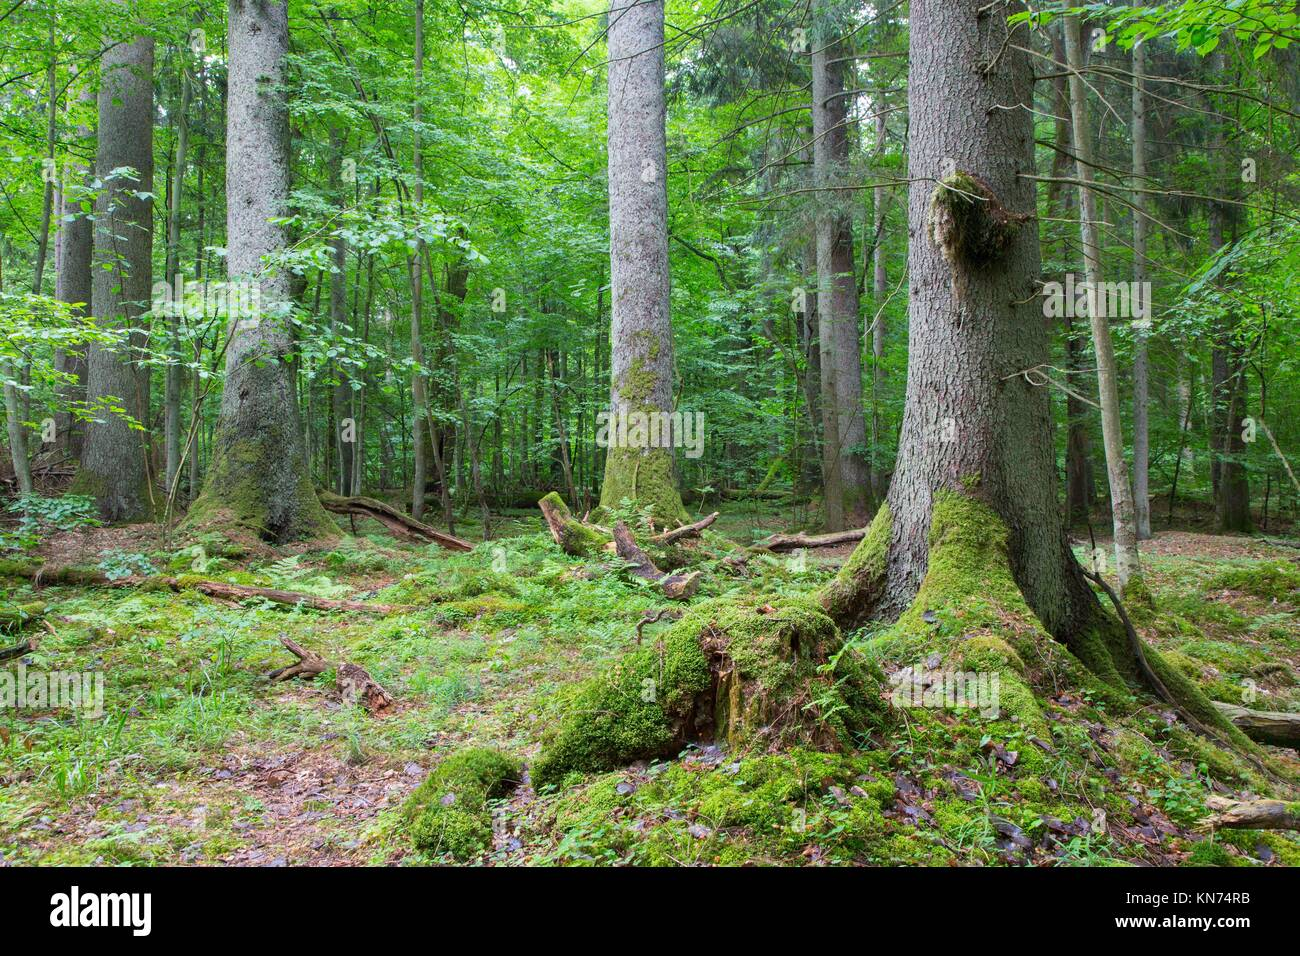 Group of old spruces inside deciduous stand of Bialowieza Forest,Poland,Europe. - Stock Image